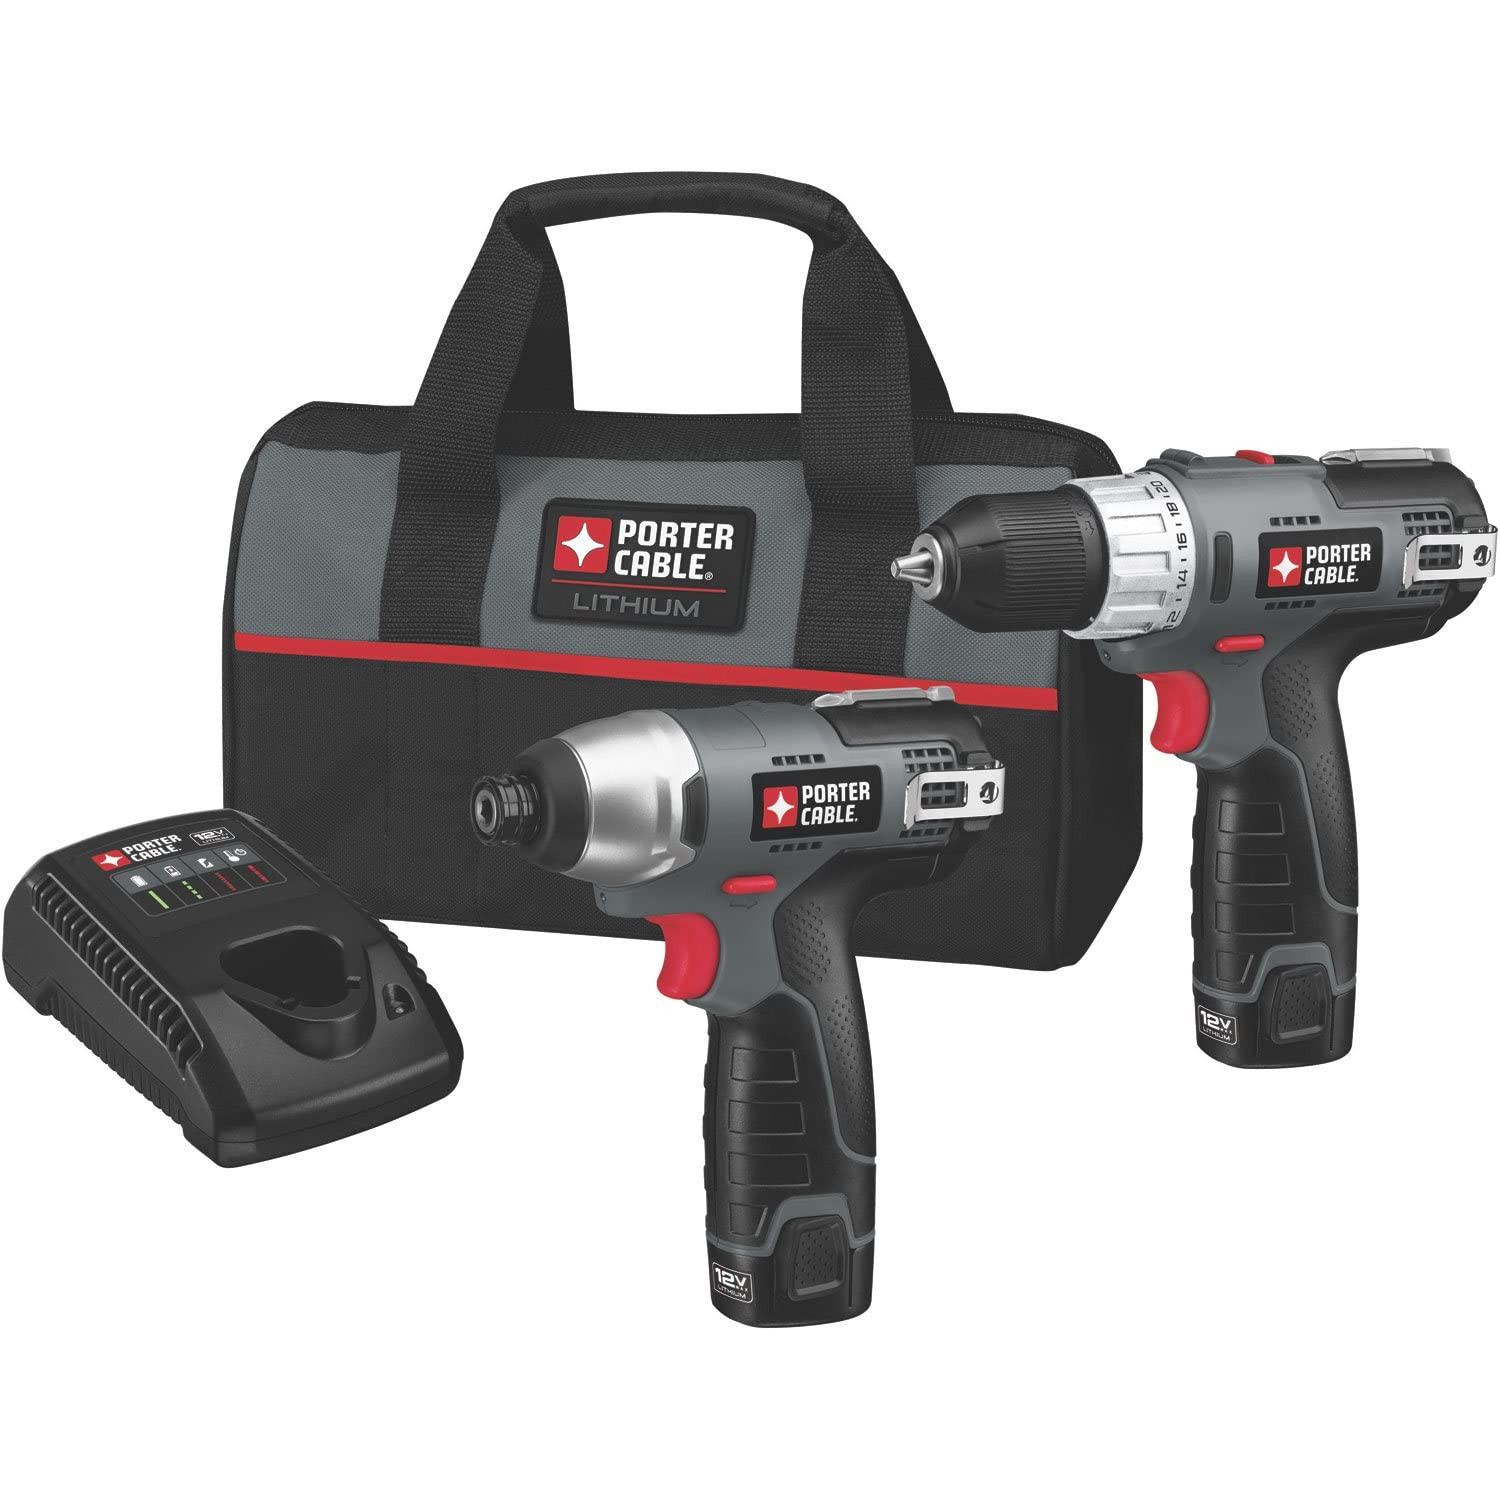 Lowe S Lowes Porter Cable 12v Compact Duo Impact